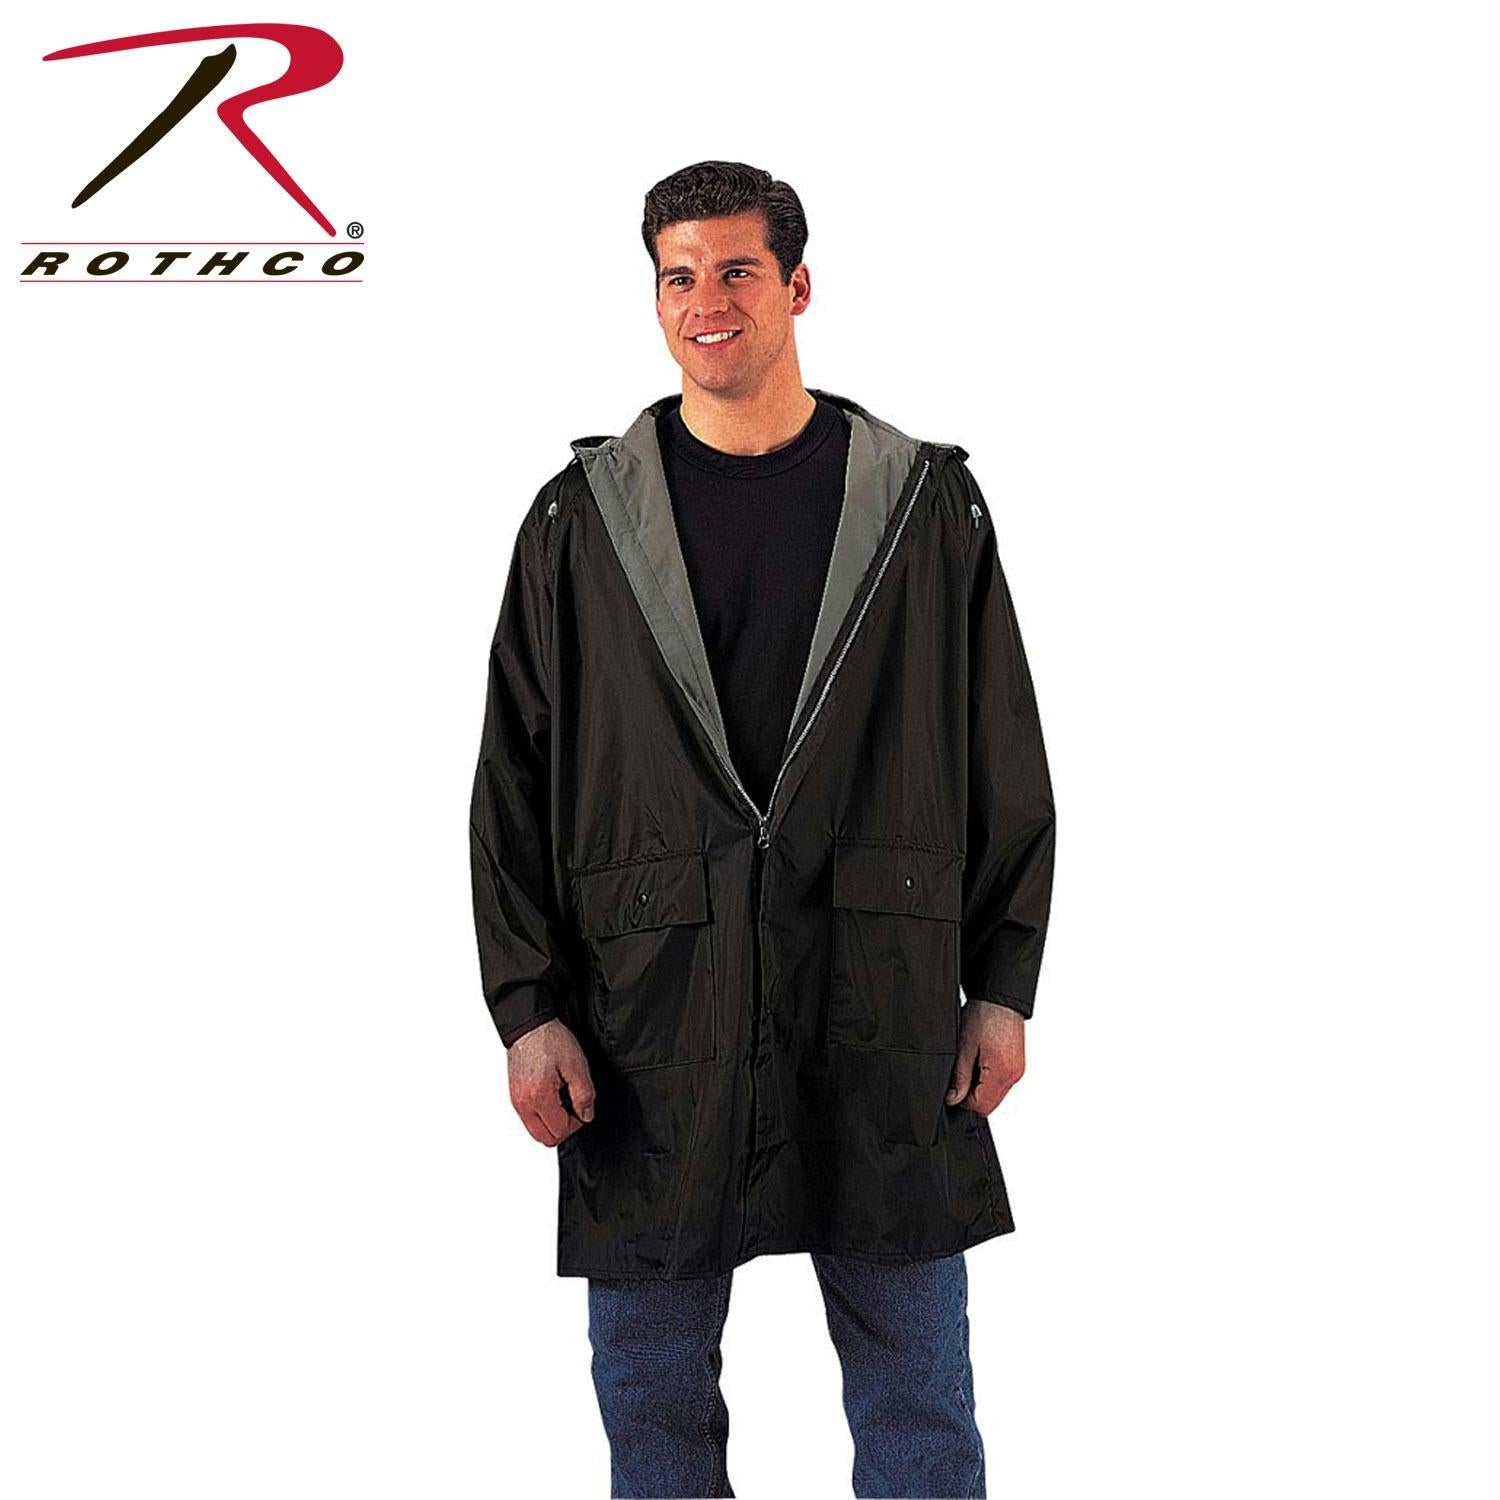 Rothco PVC Inner Attached Hood With Under Arm Vents - Black / Olive Drab / M